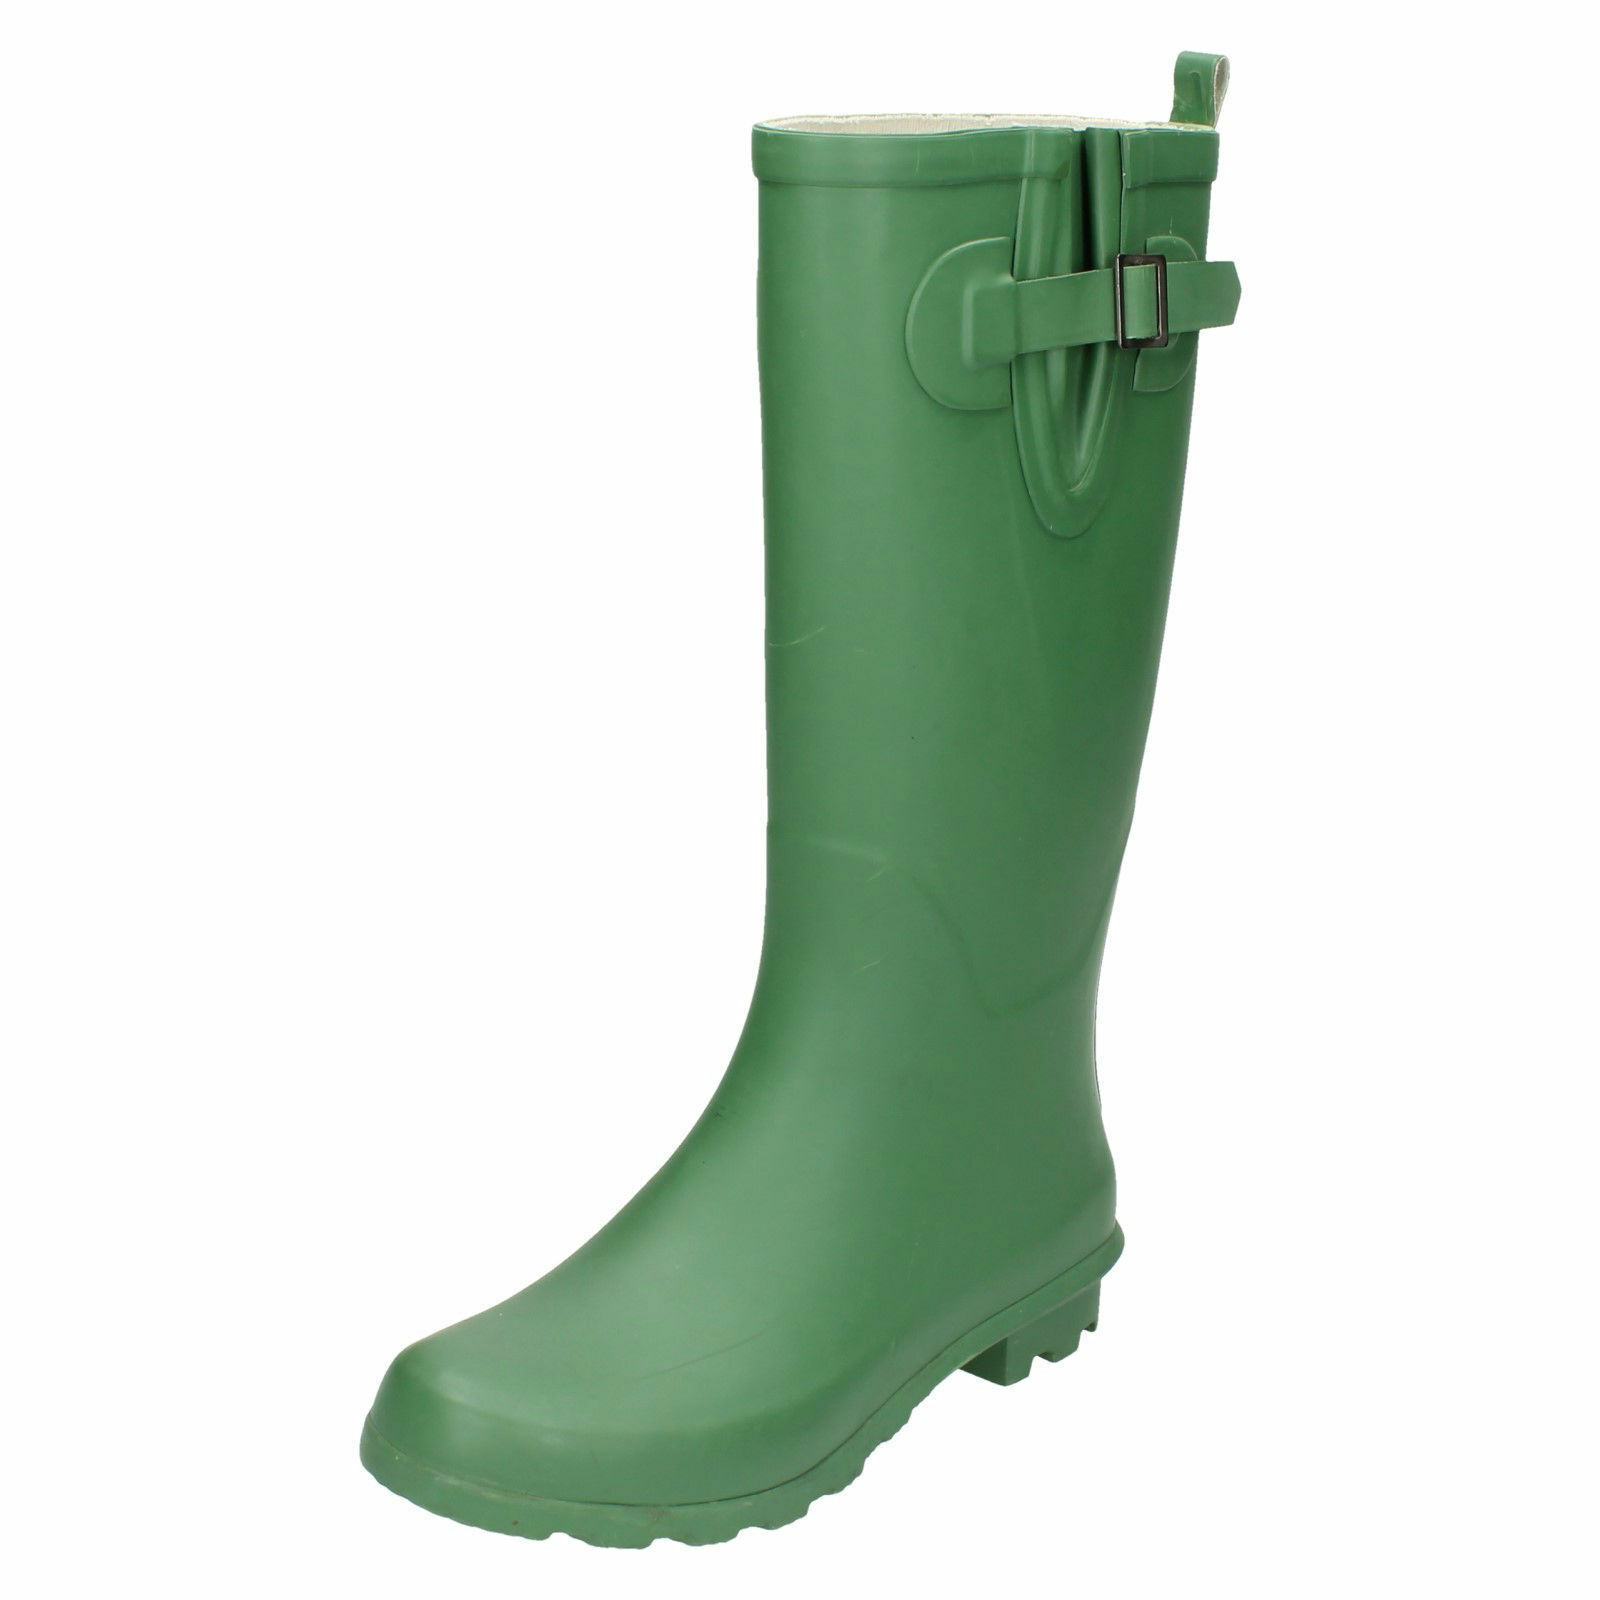 LADIES GREEN WELLINGTON WITH TOP BUCKLE STYLE - X1169